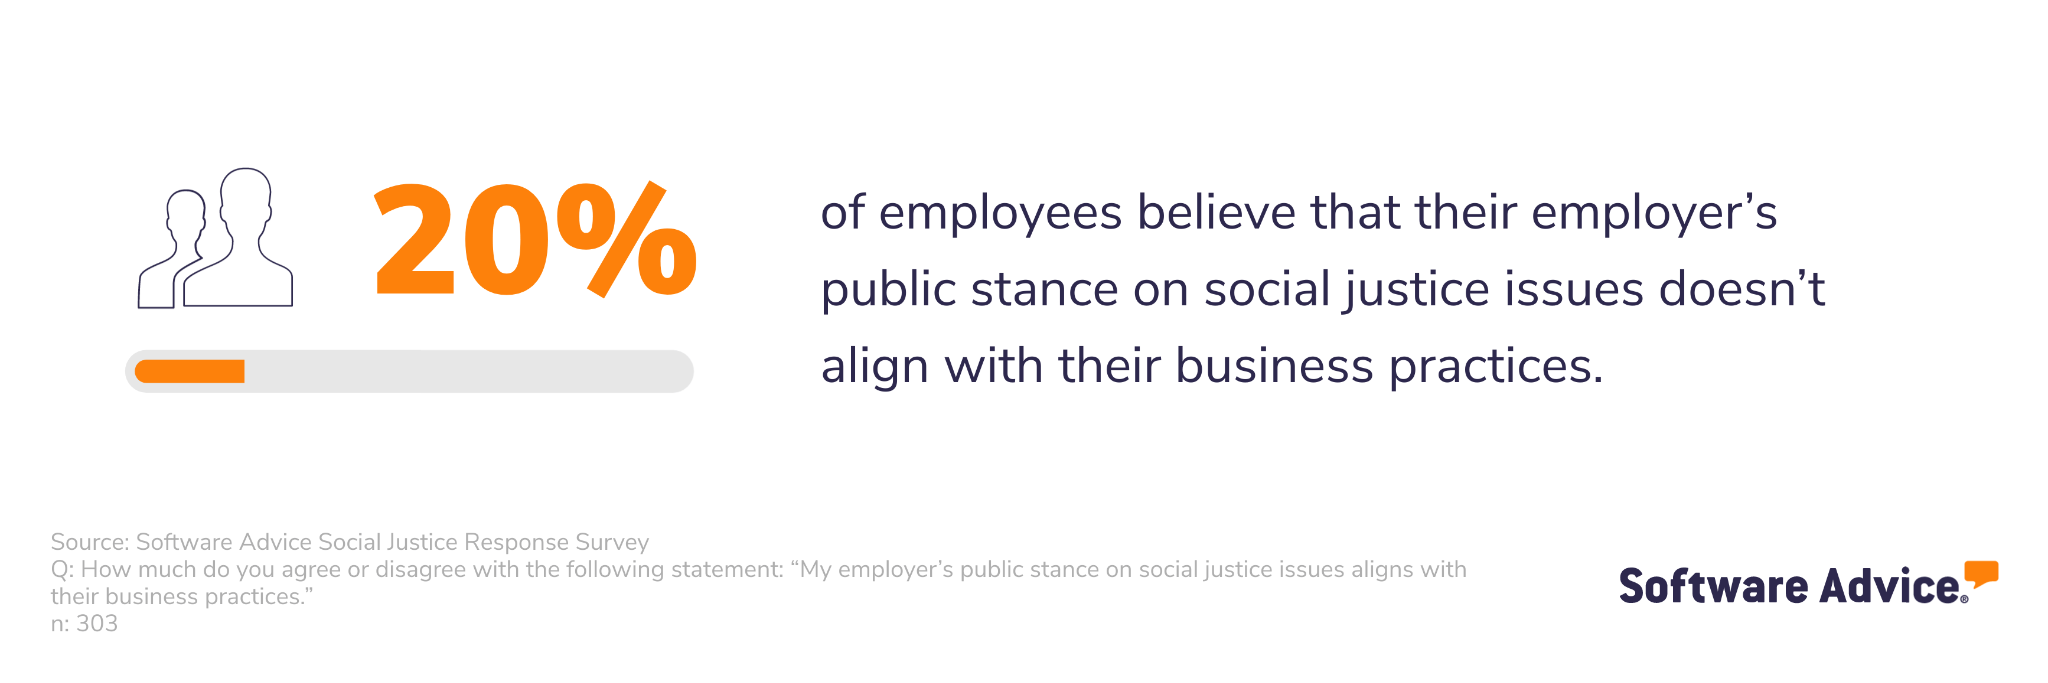 Key stat graphic showing that 20% of employees don't believe their employer's stance on social justice issues aligns with their business practices.